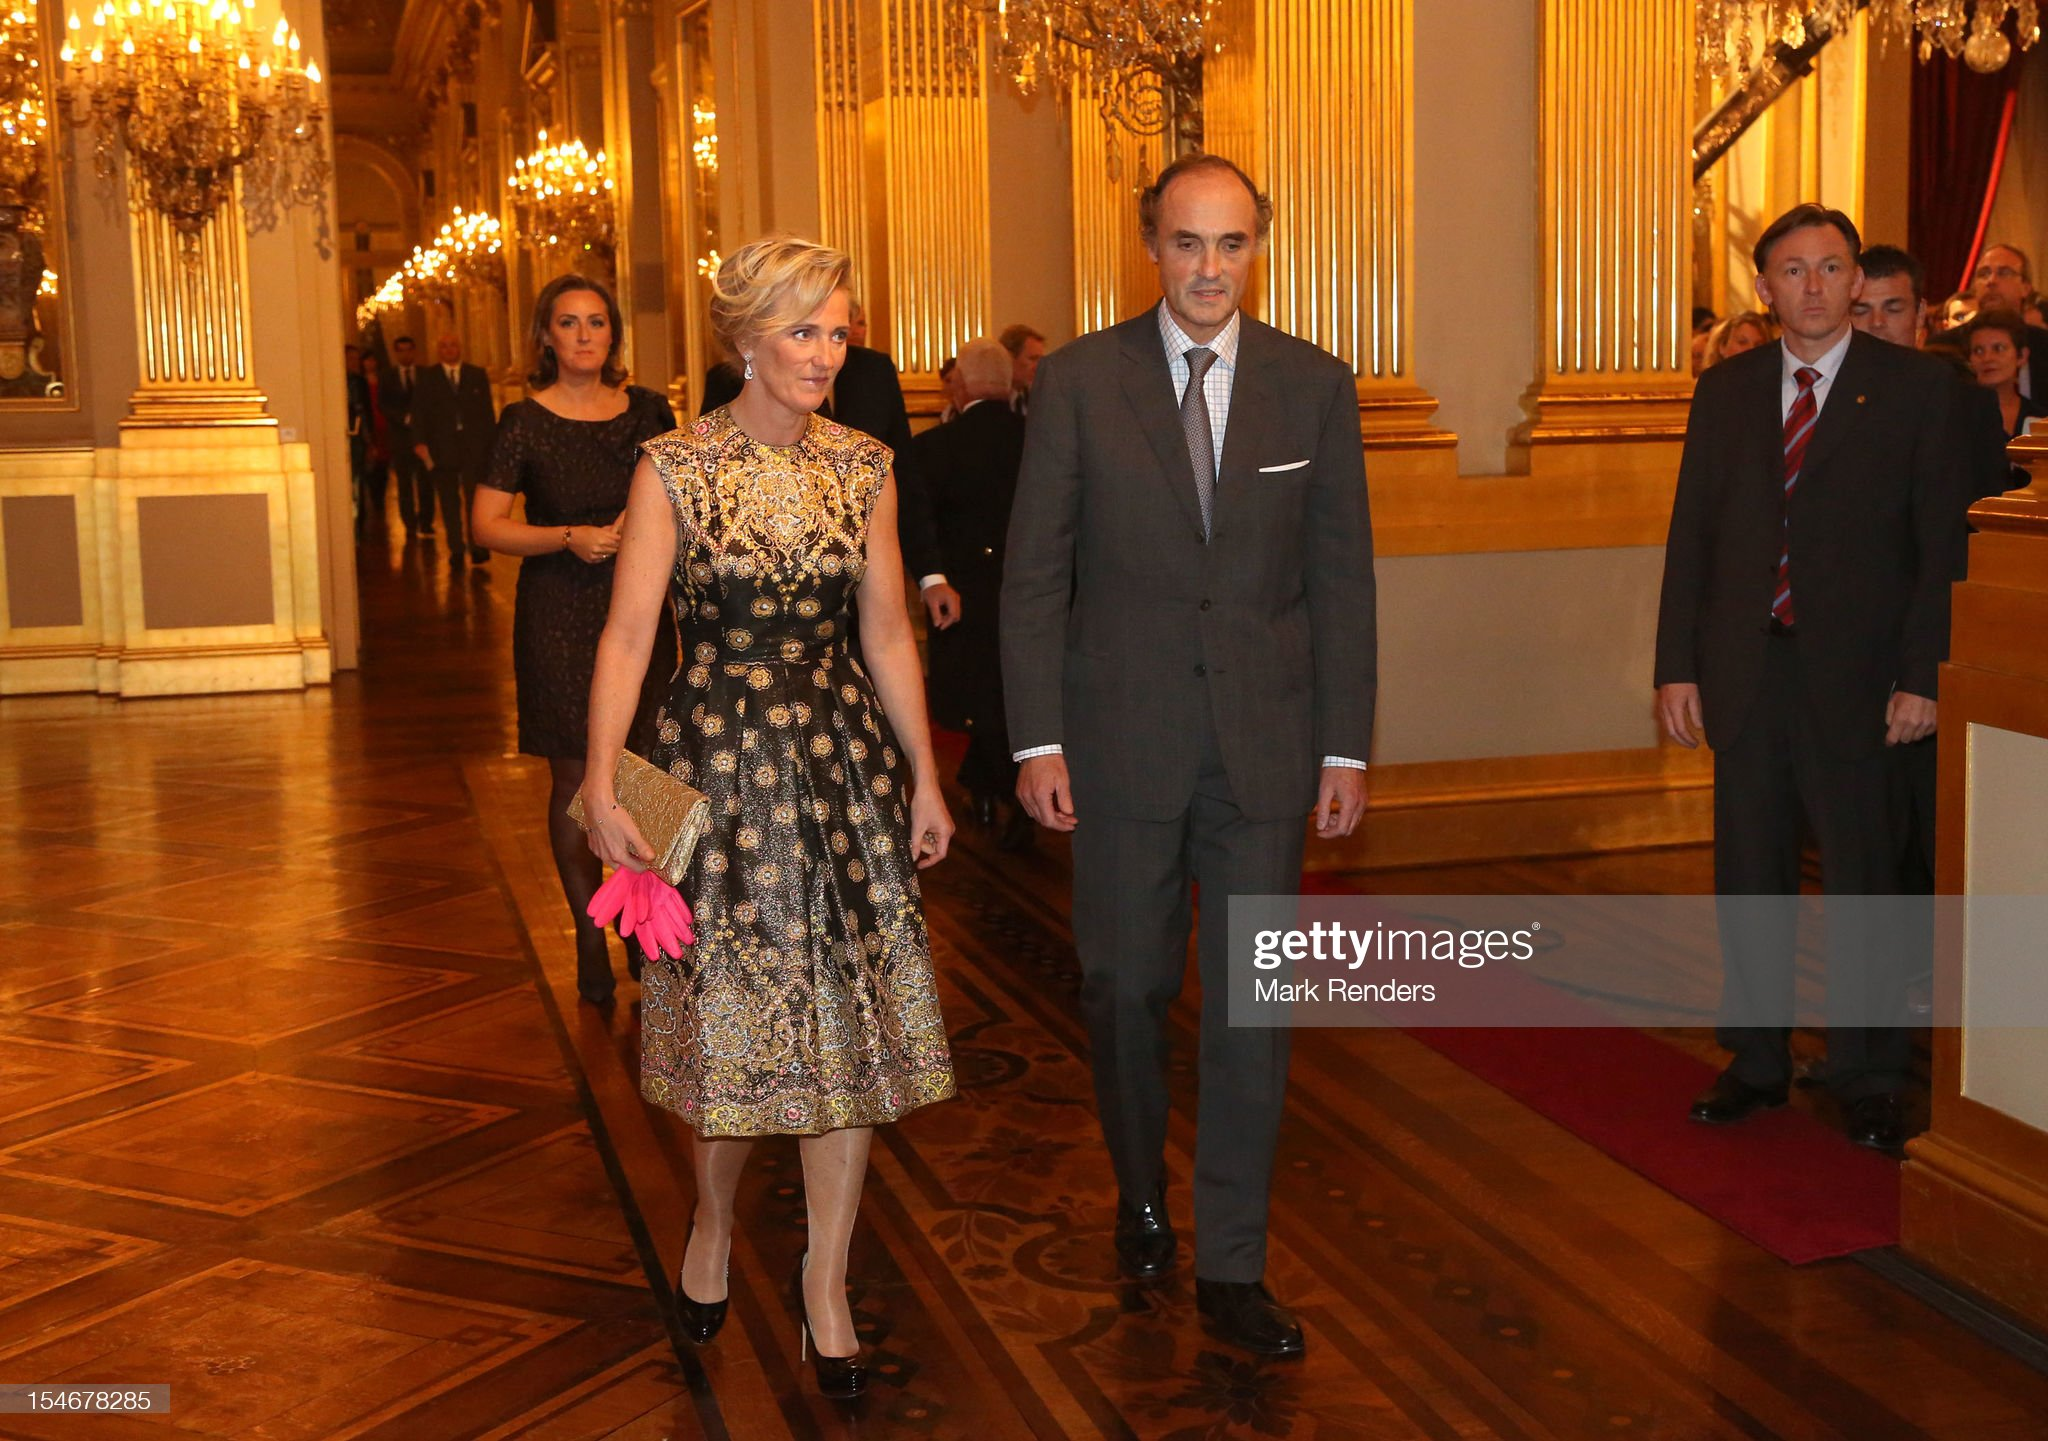 The Belgian Royal Family Hosts A Concert As Part Of 'Festival van Vlaanderen' : News Photo